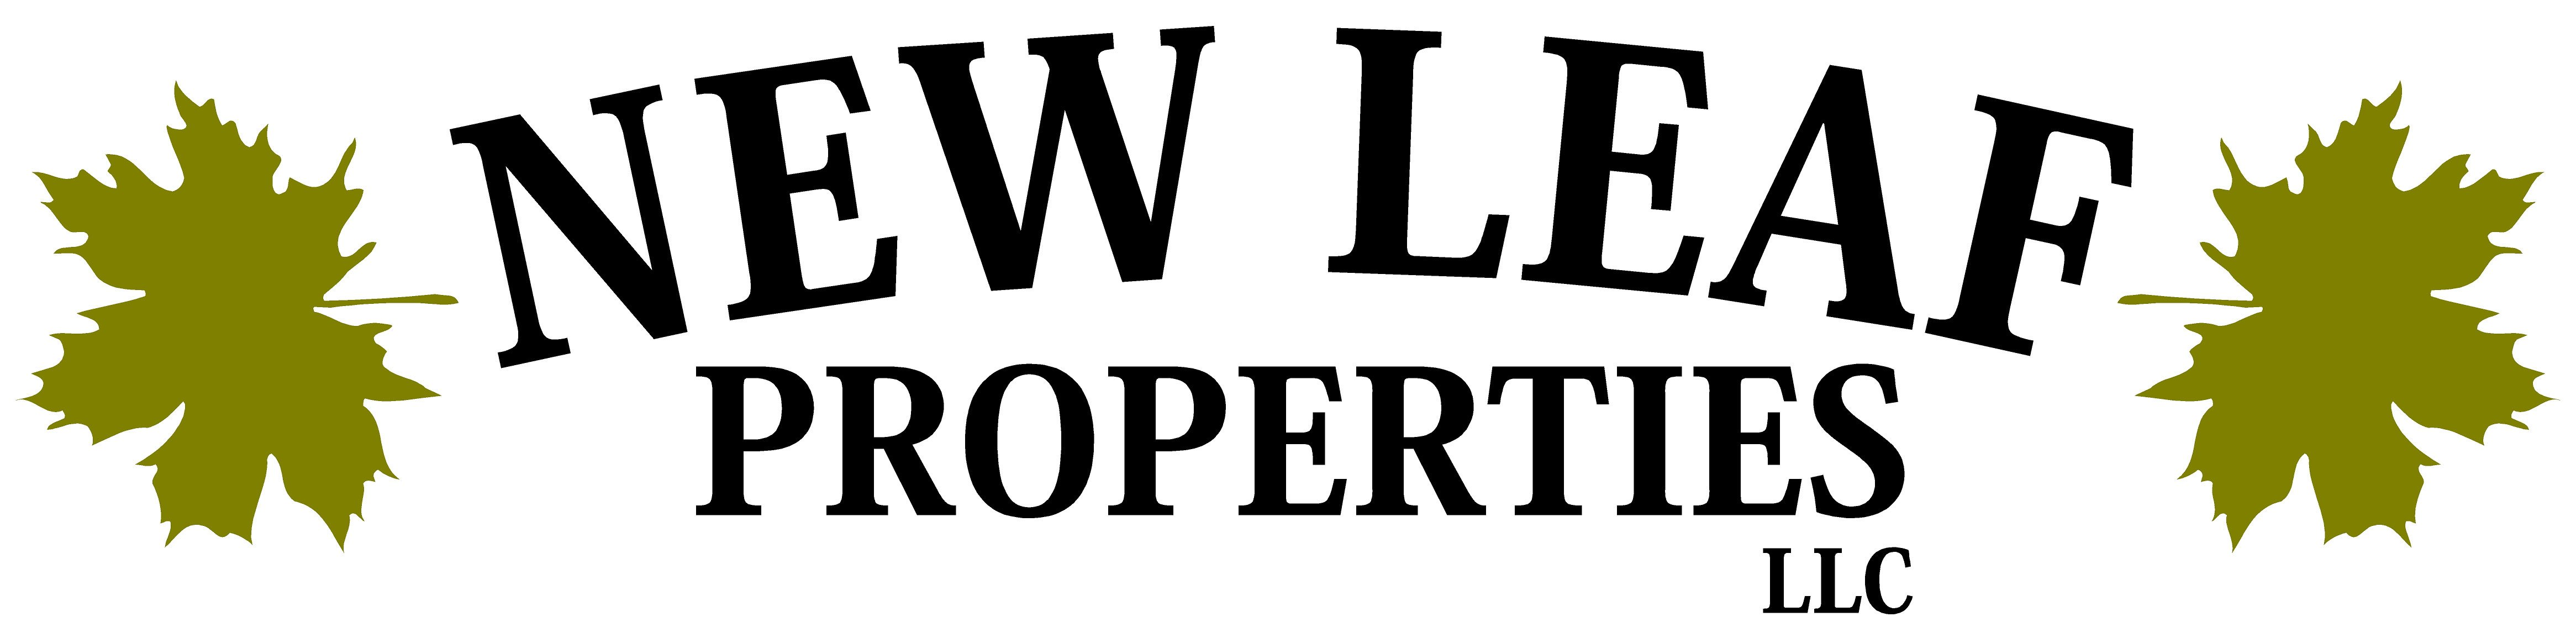 New Leaf Properties LLC - Logo